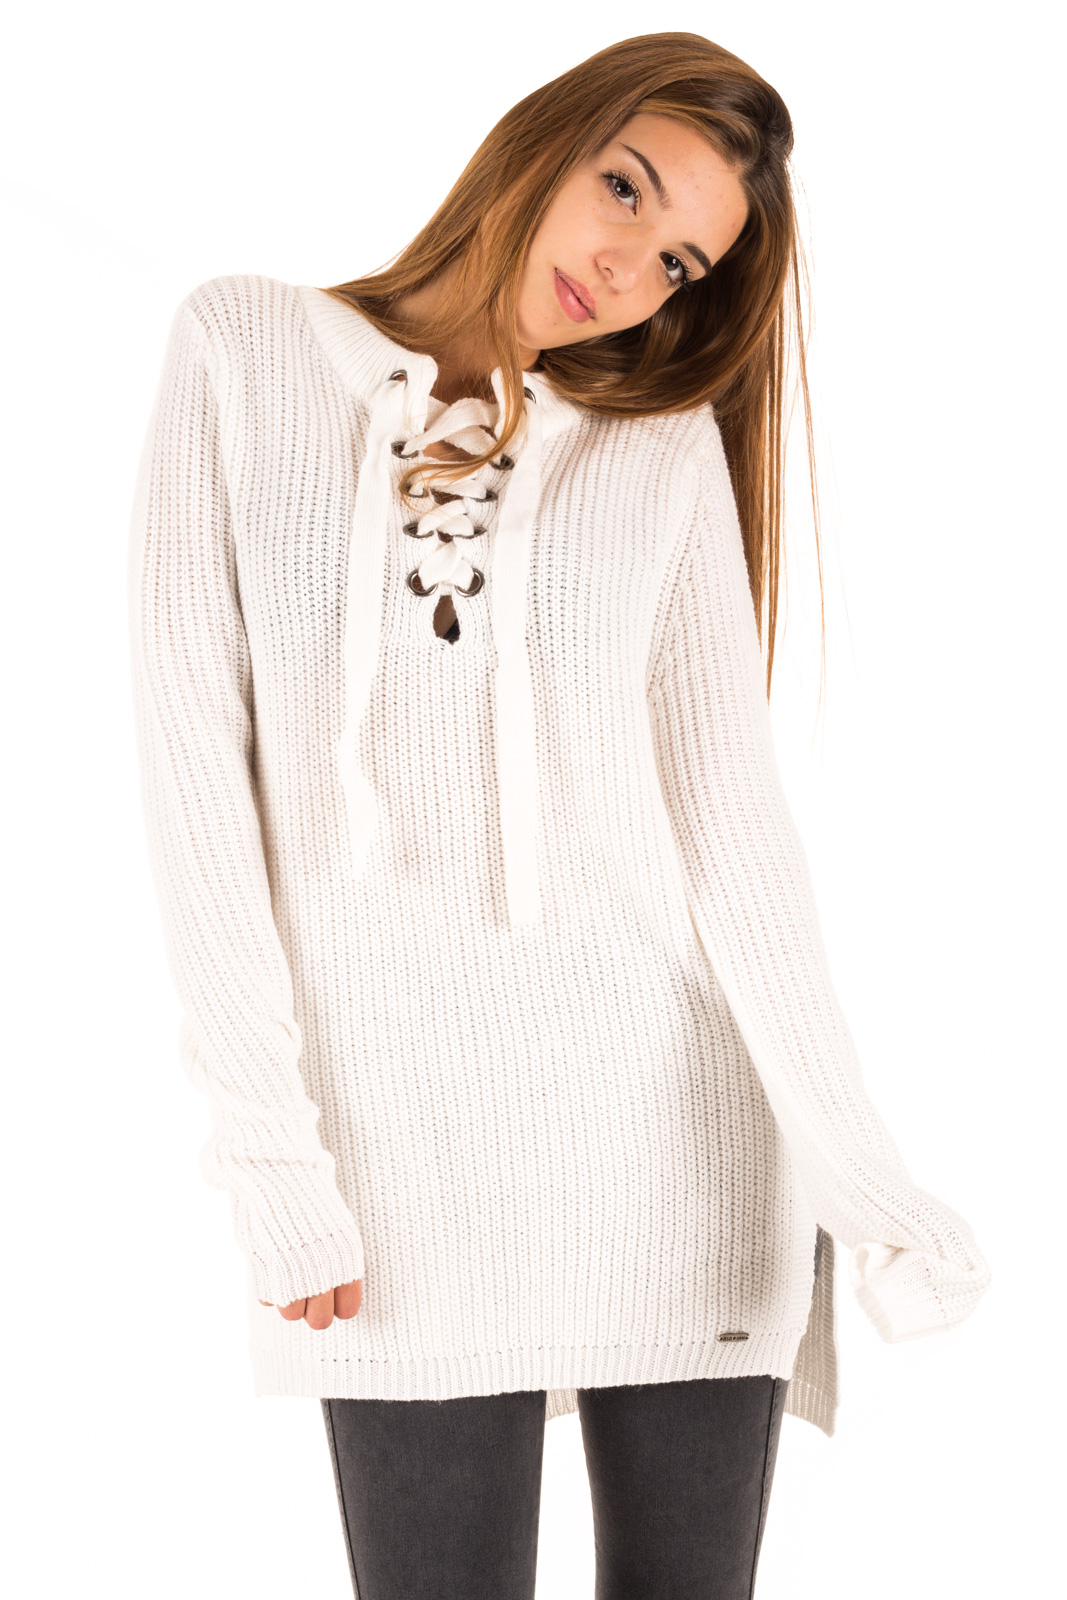 BSB - Sweater with white plaid